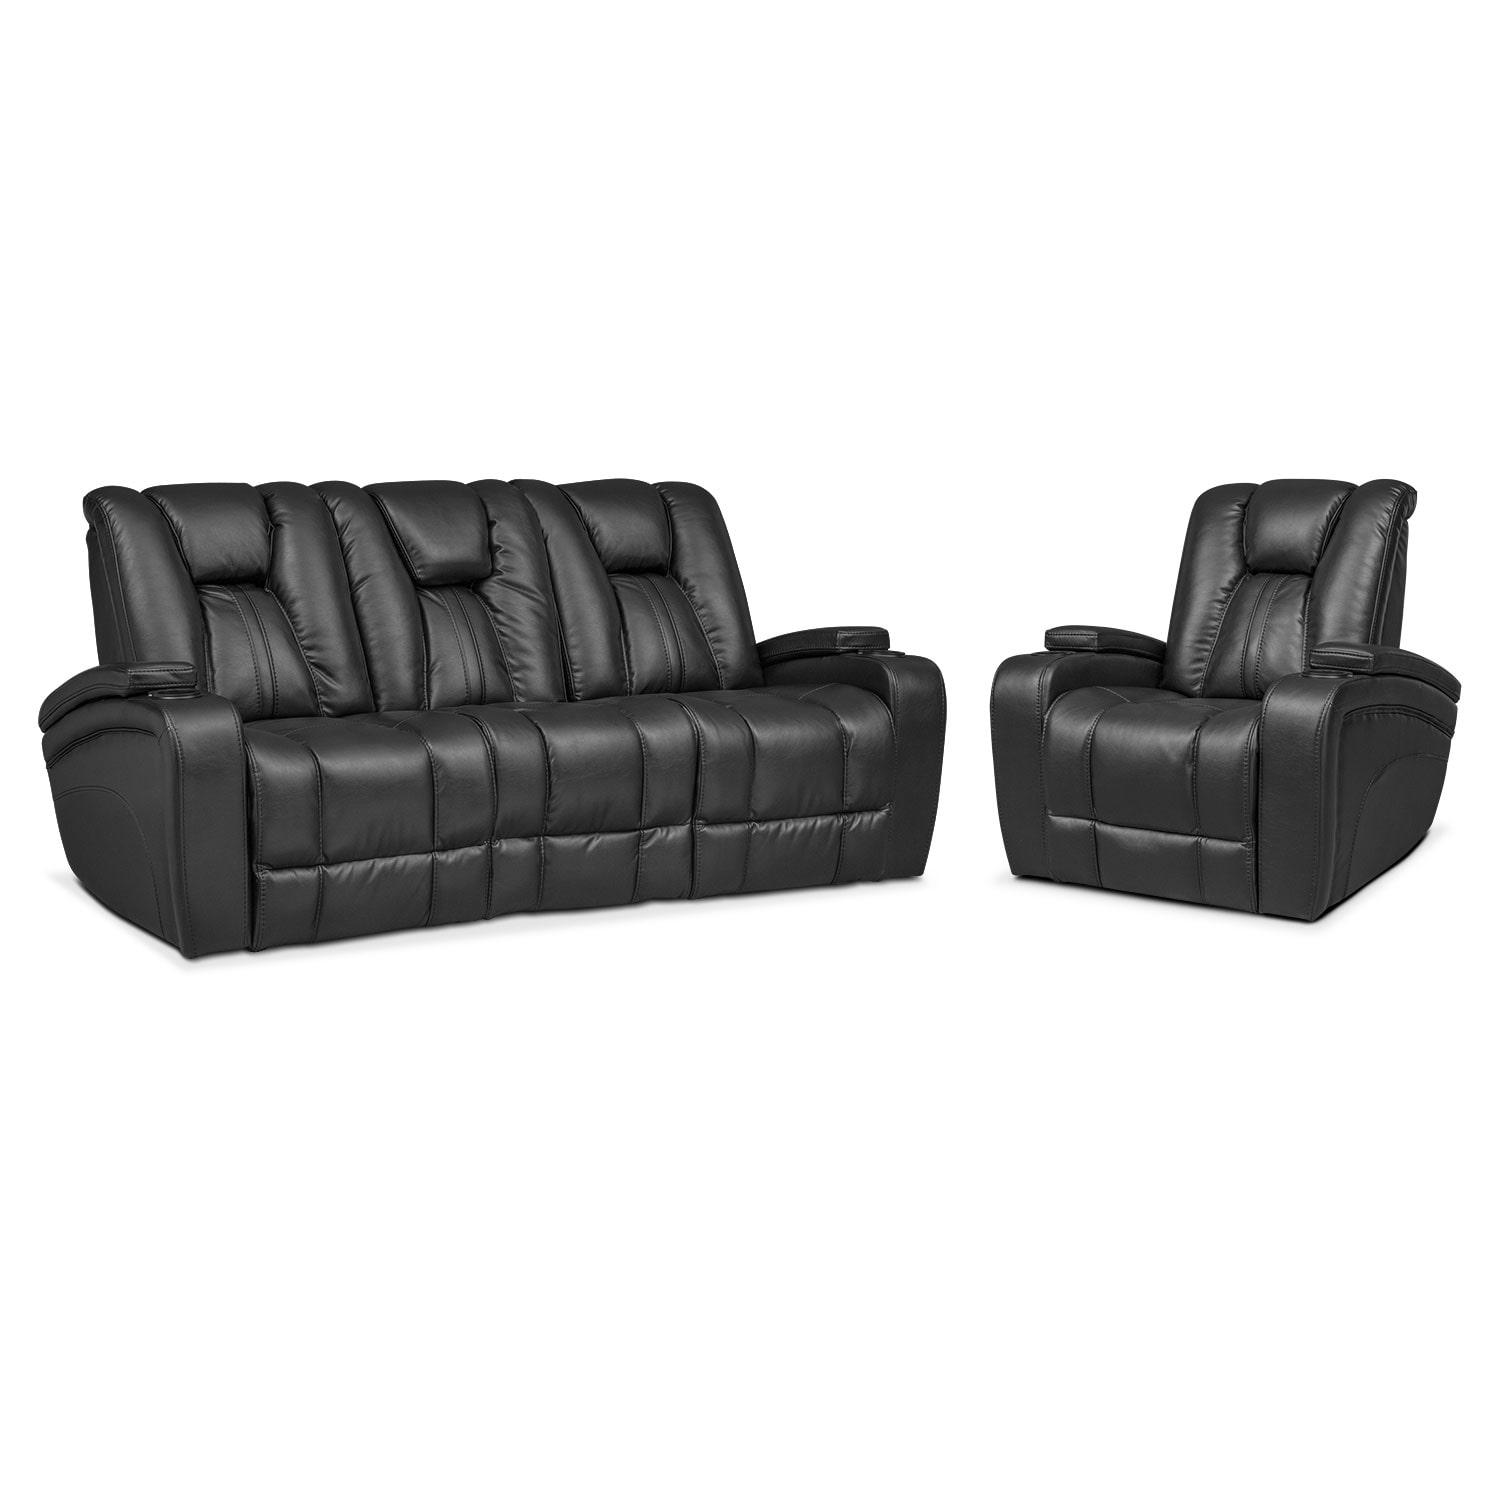 Power recliner electrasofa electralove picture of for Bellagio 100 leather chaise